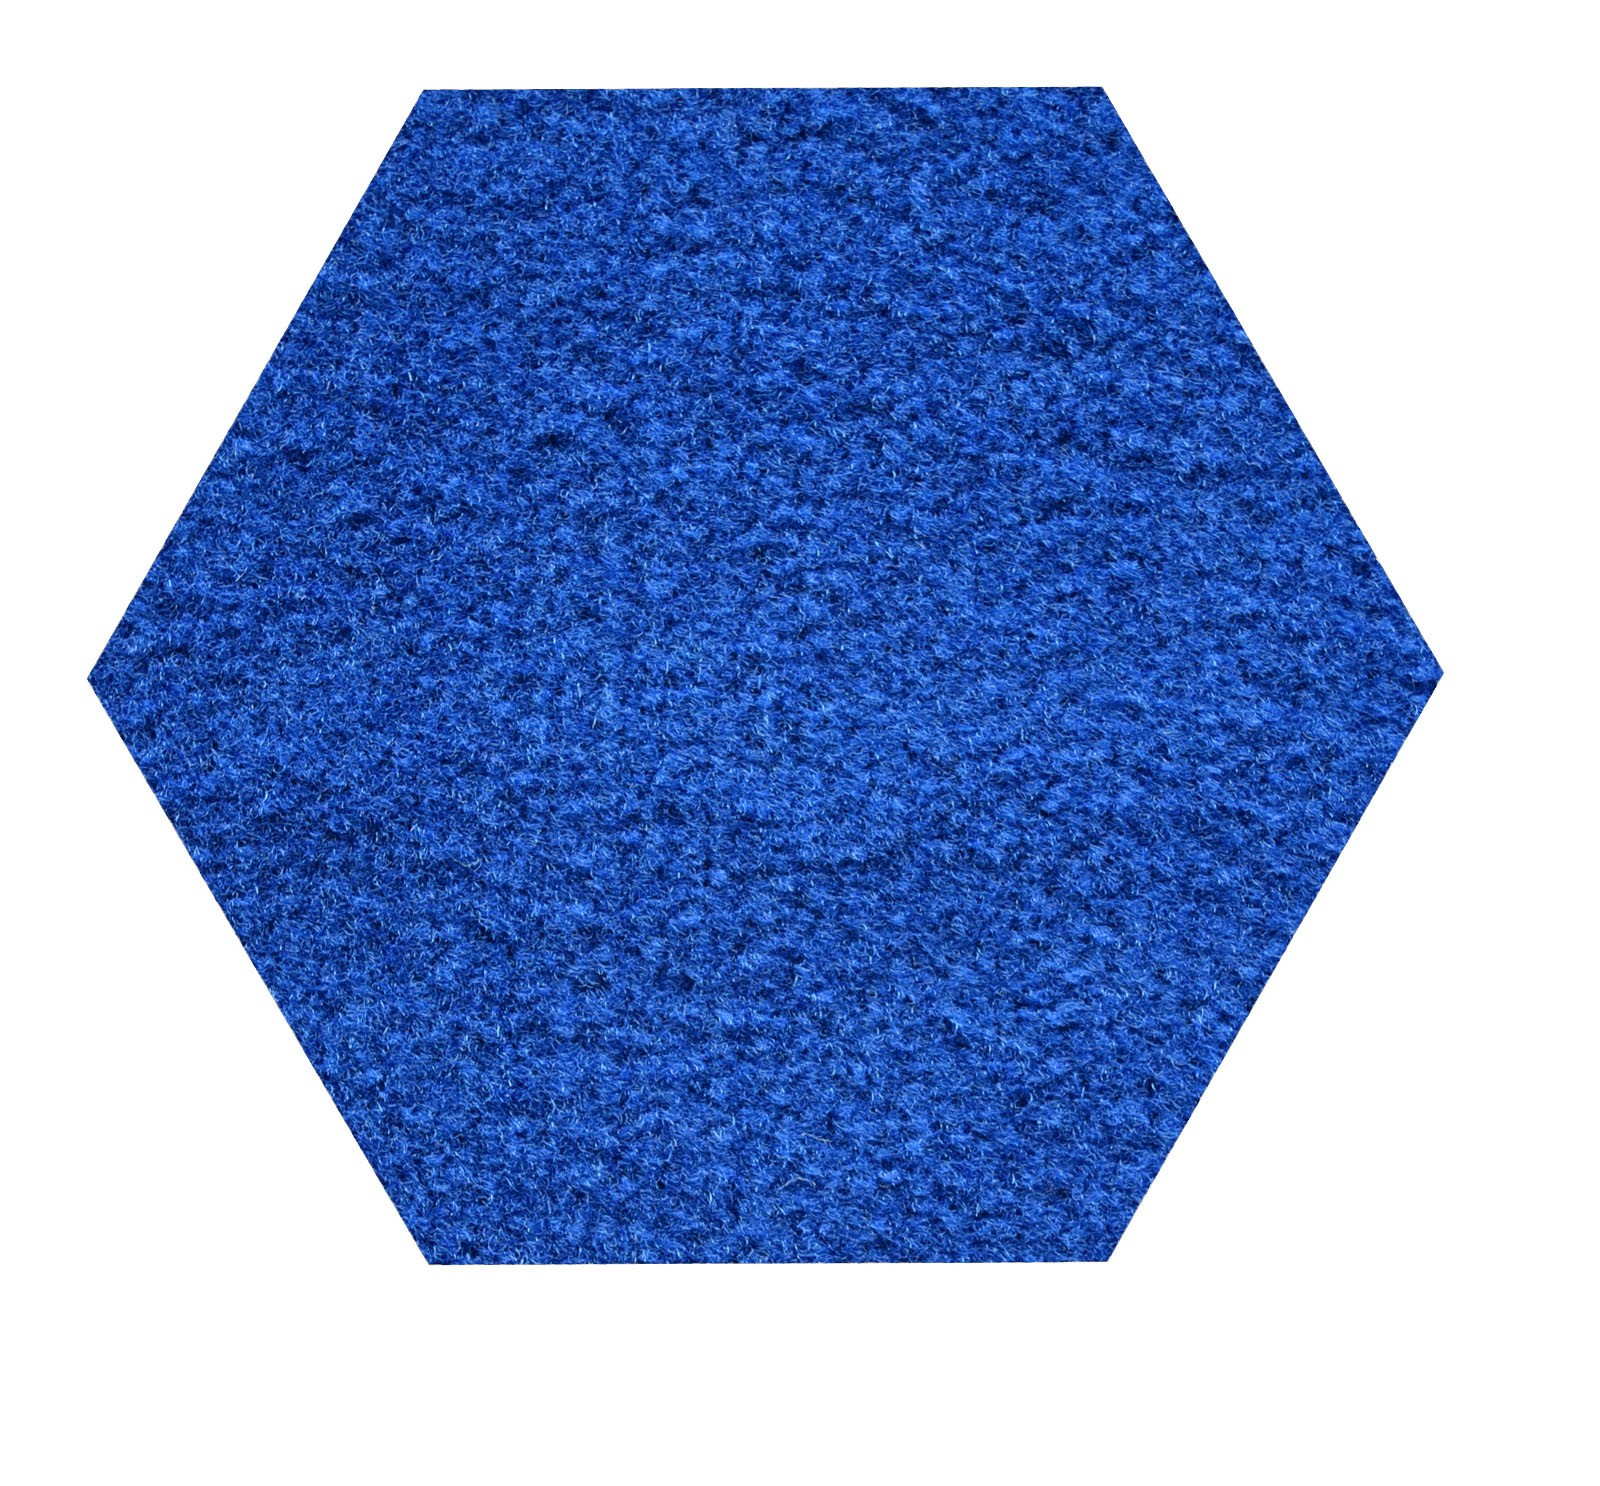 Color world collection pet friendly indoor outdoor area rugs with Rubber Marine Backing for Patio, Porch, Deck, Boat, Basement or Garage with Premium Bound Polyester Edges Blue 4' Hexagon